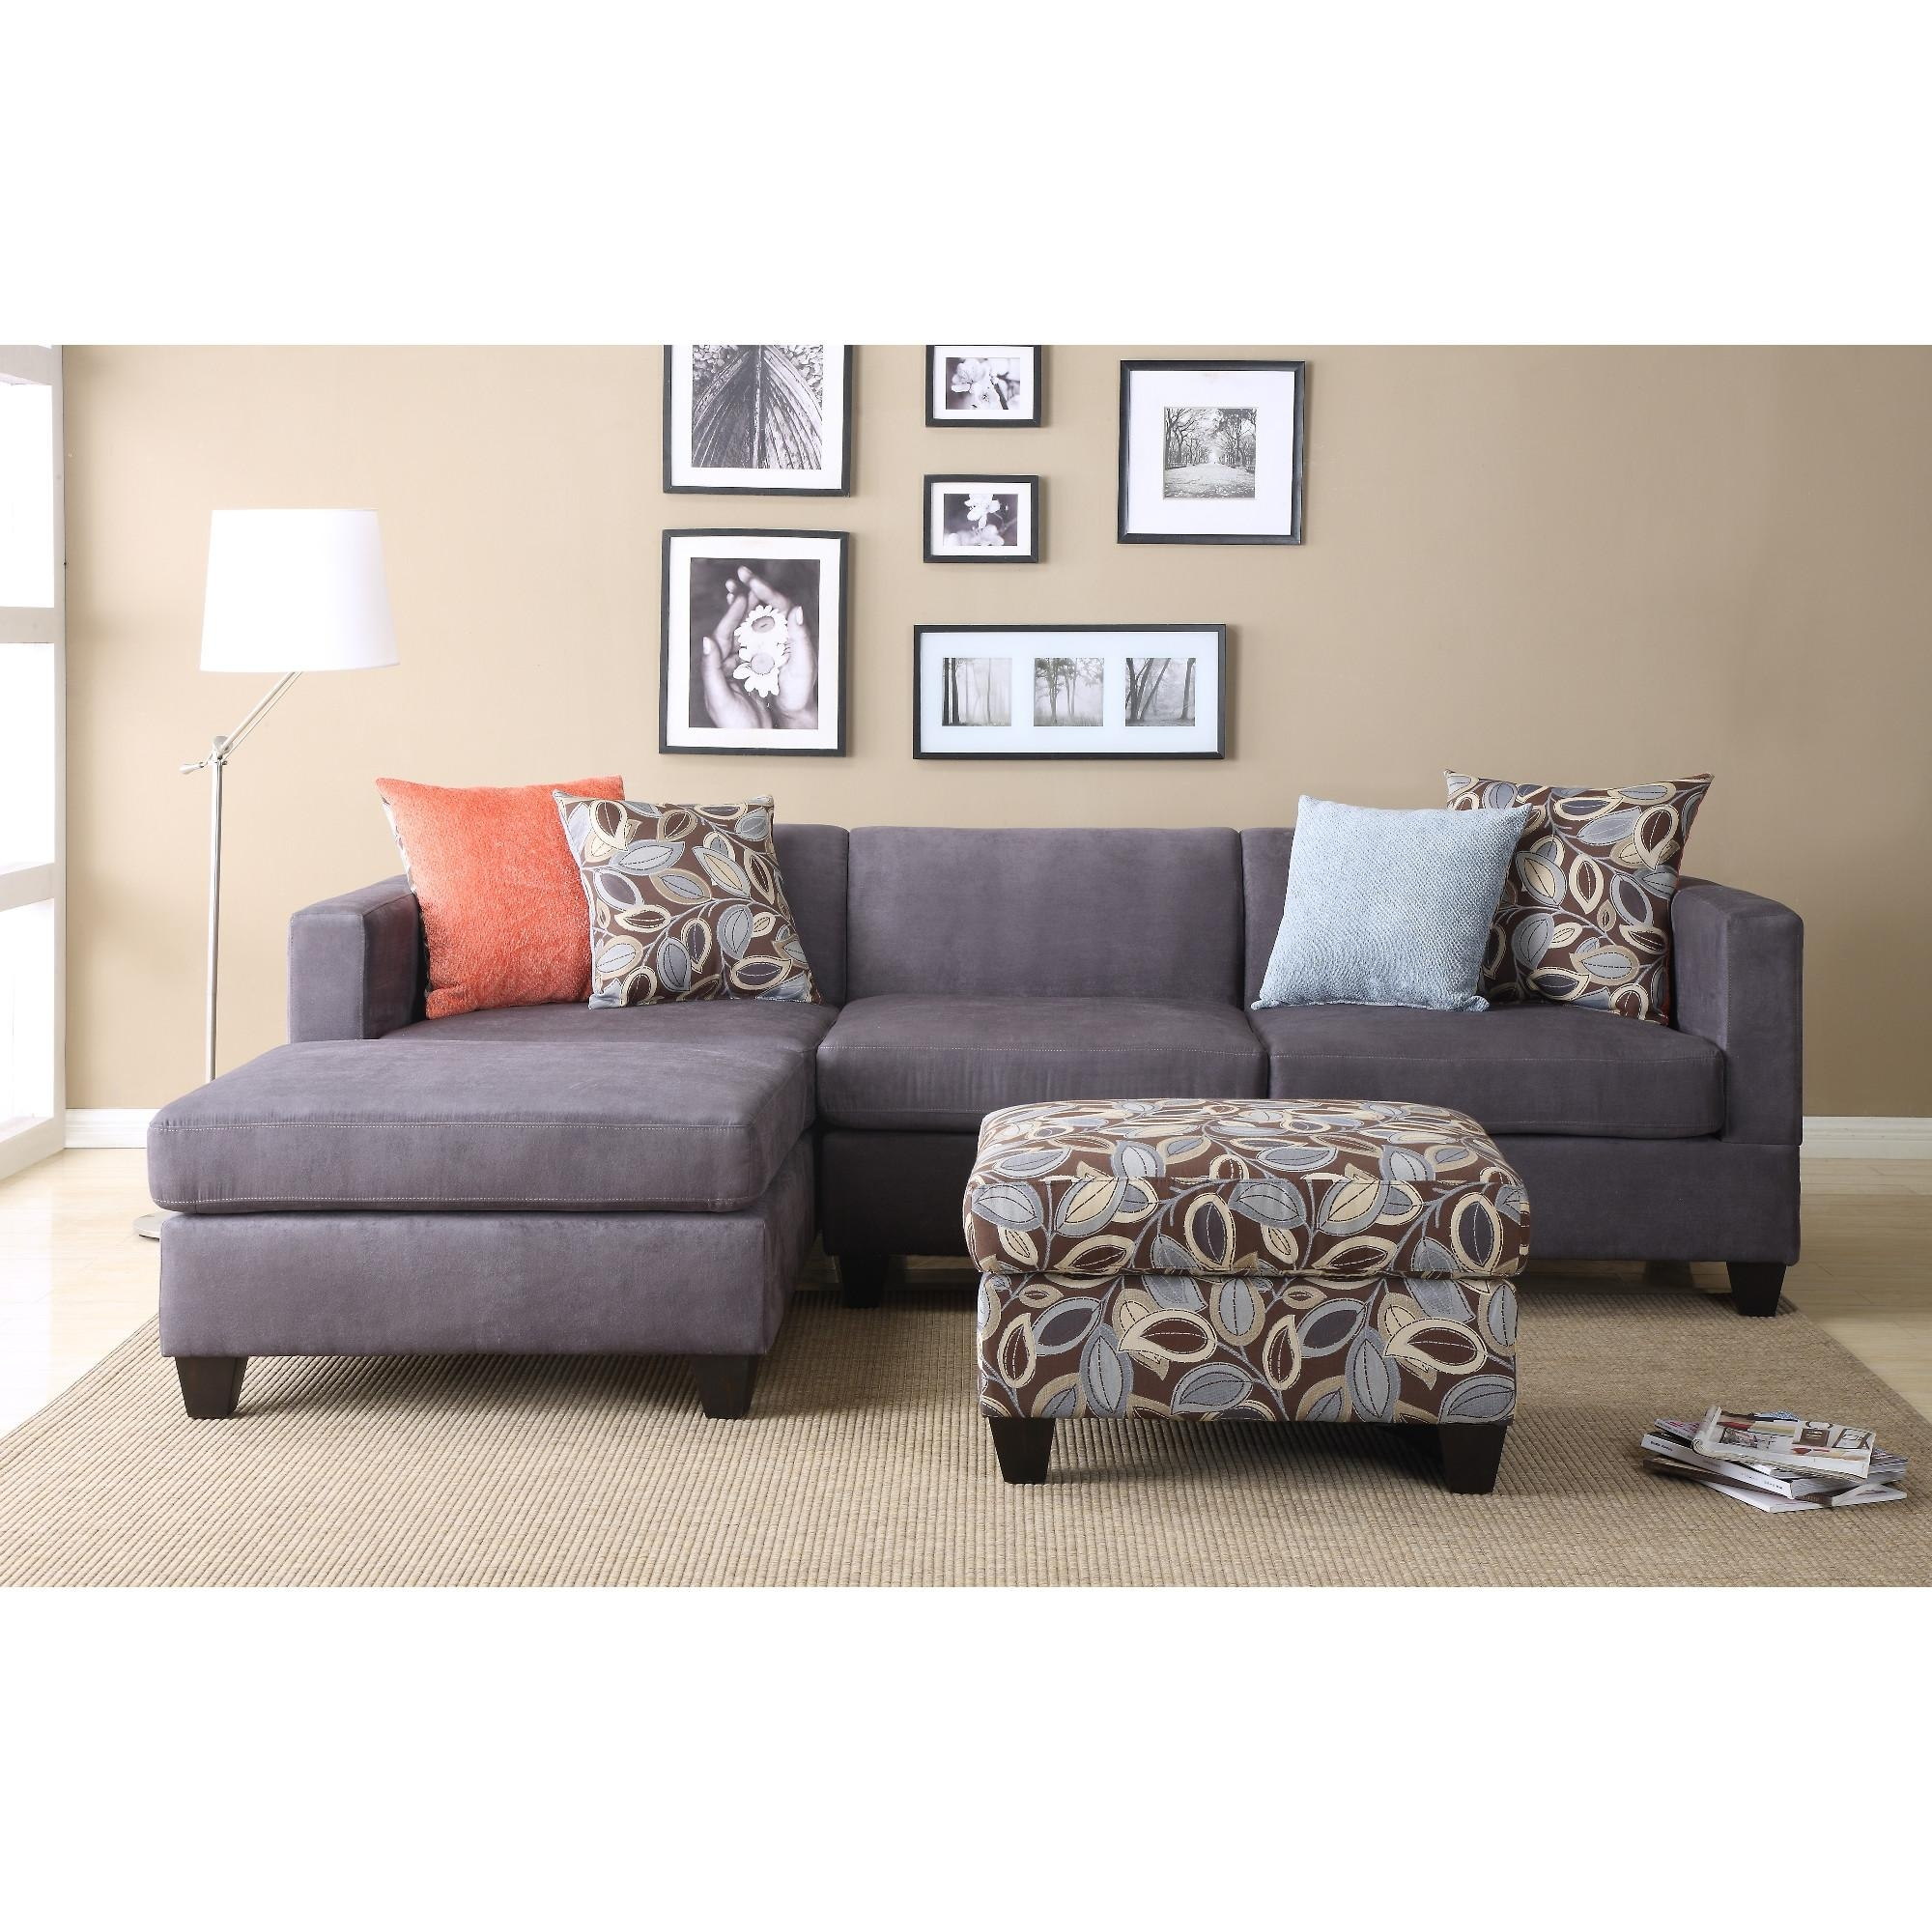 designst in photo chesterfield size to furniture homebnc glamorous sectional buy full america sofa best design ideas corinee sofas extraordinary of piece